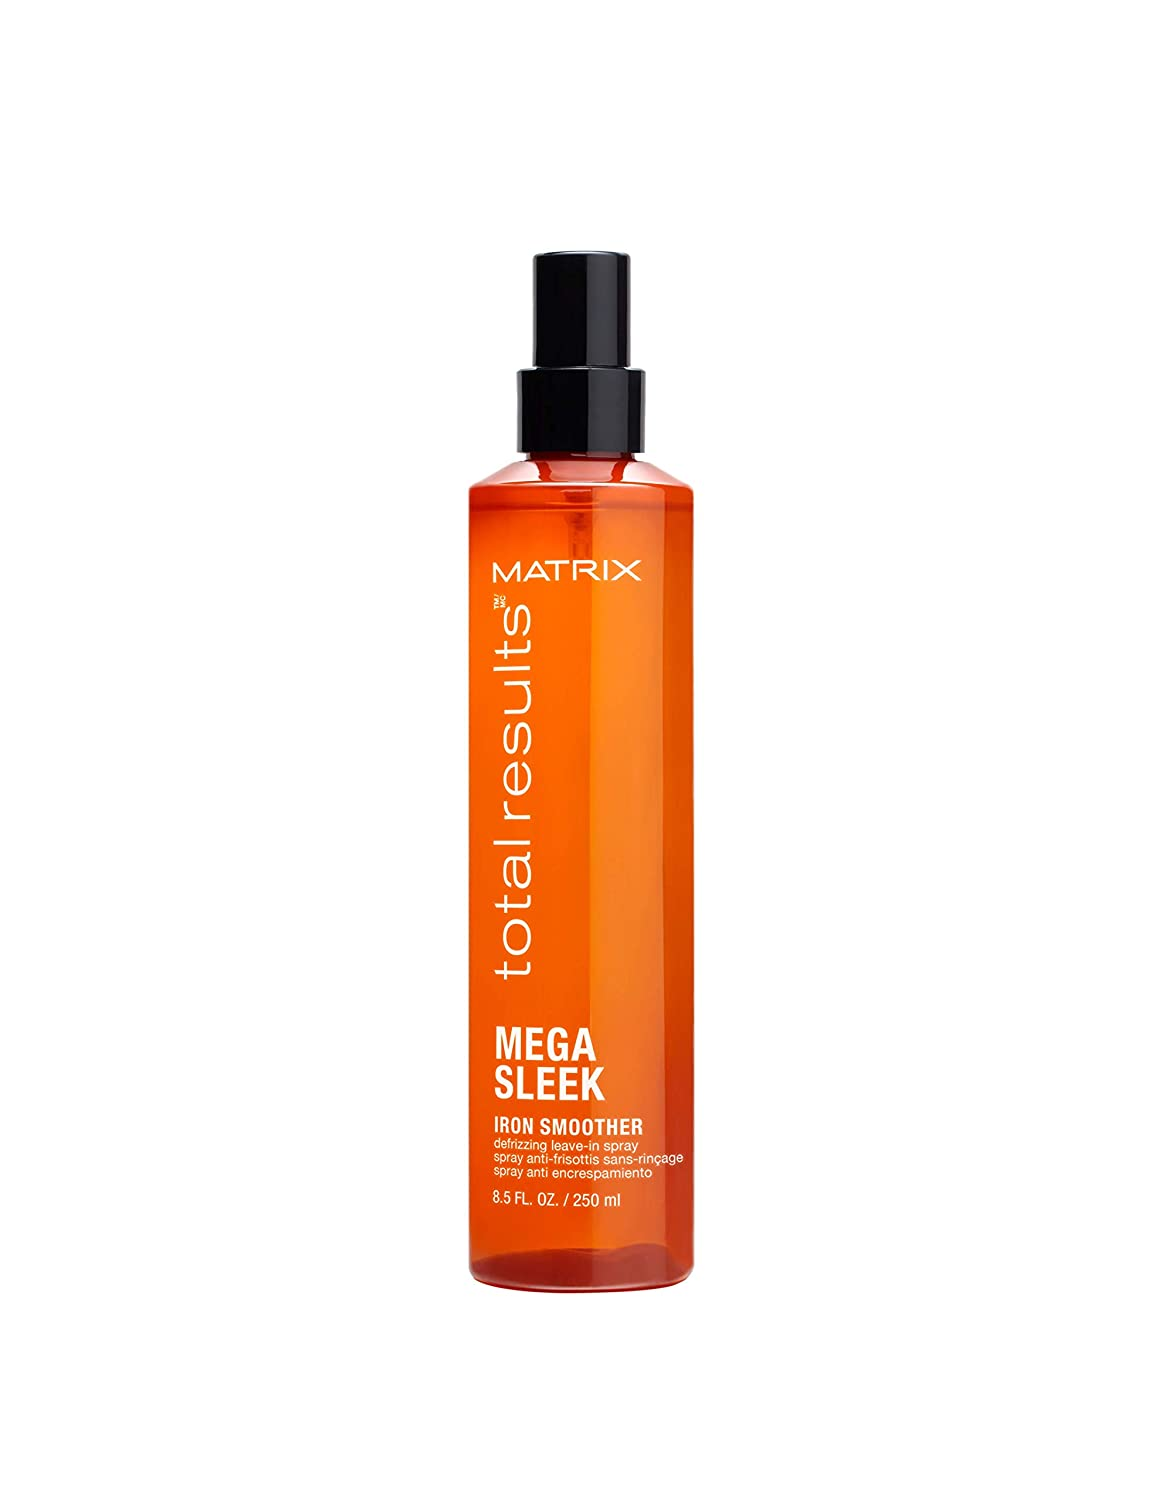 MATRIX Total Results Mega Sleek Iron Smoother Defrizzing Leave-In Spray |Protects Against Heat Damage Leaving Hair Smooth & Frizz-Free | For All Hair Types | 8.5 Fl. Oz.